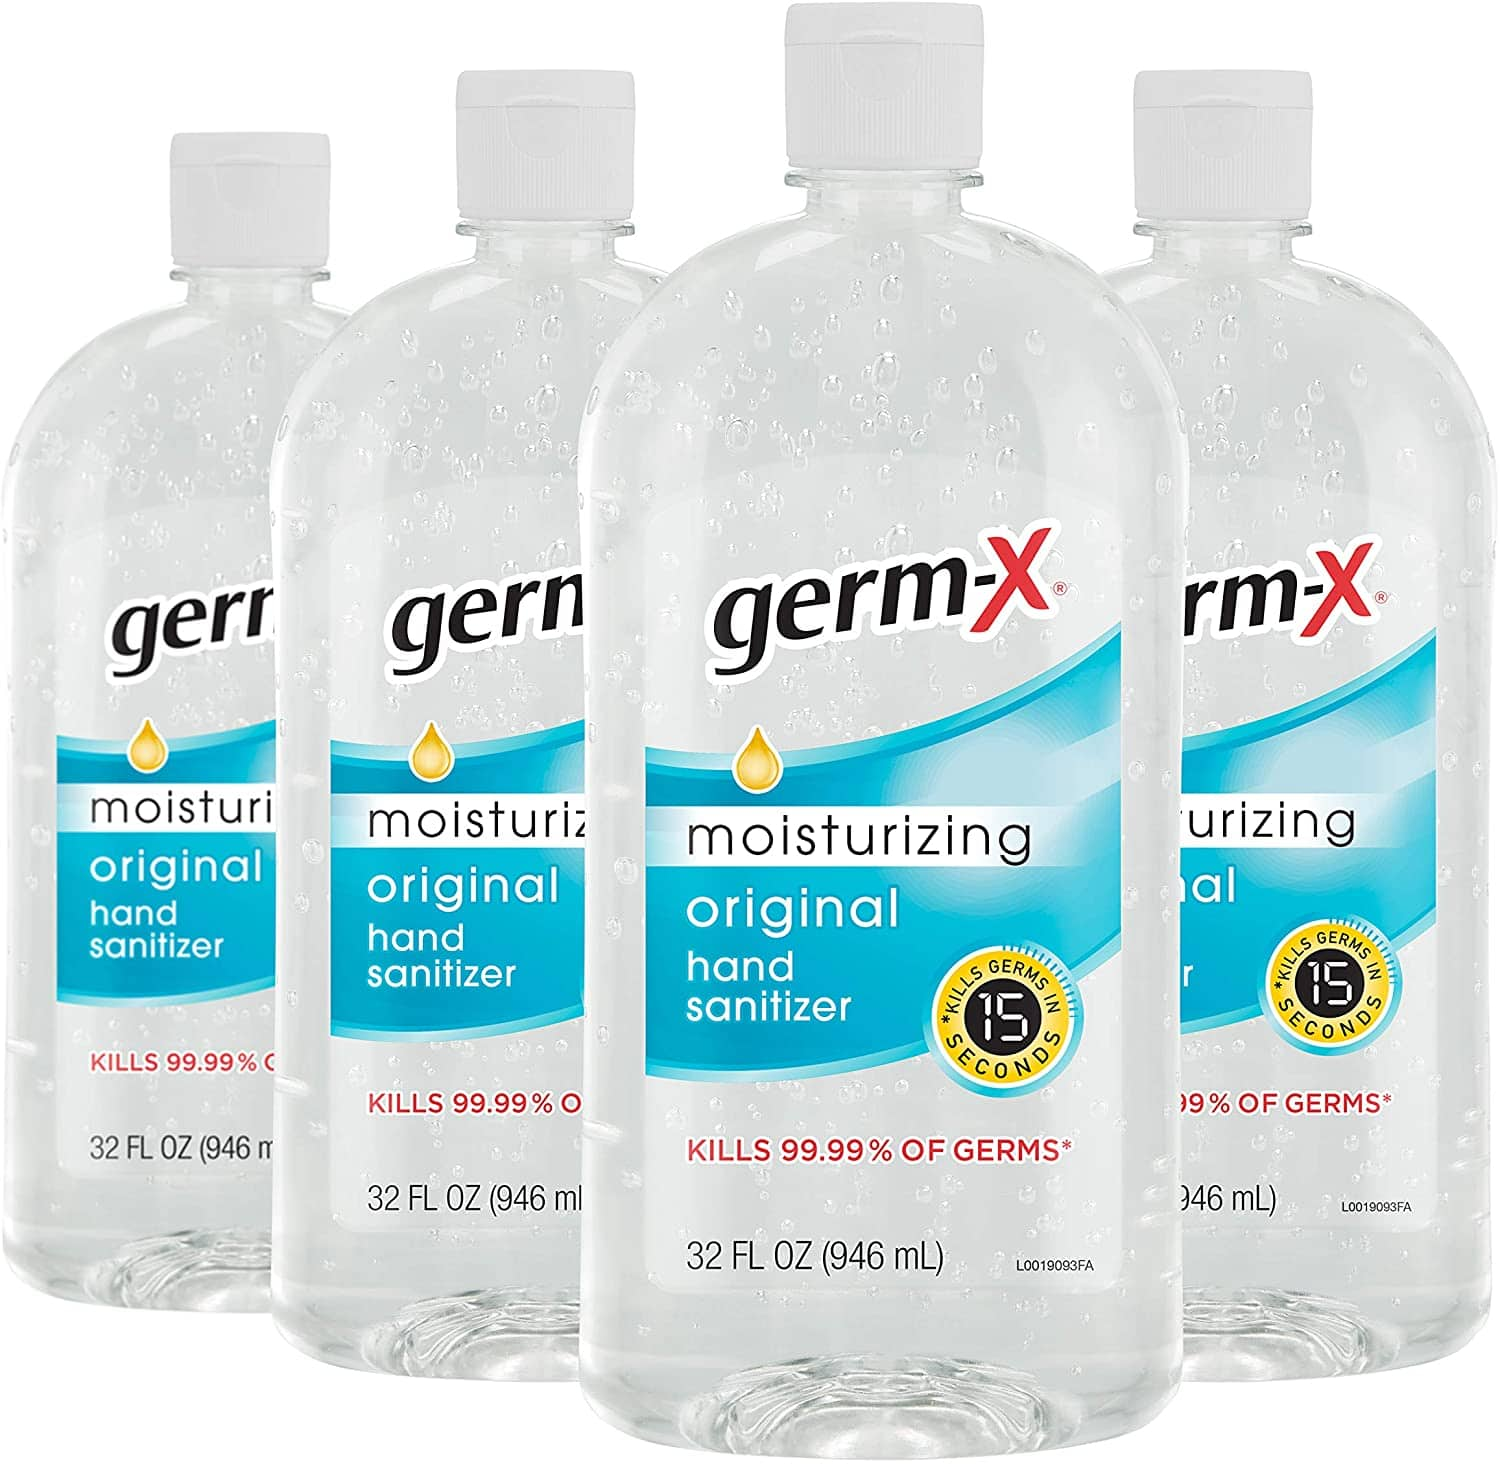 Germ-X Hand Sanitizer, Original, 32 Fluid Ounce (Pack of 4) @ Amazon for $17.99